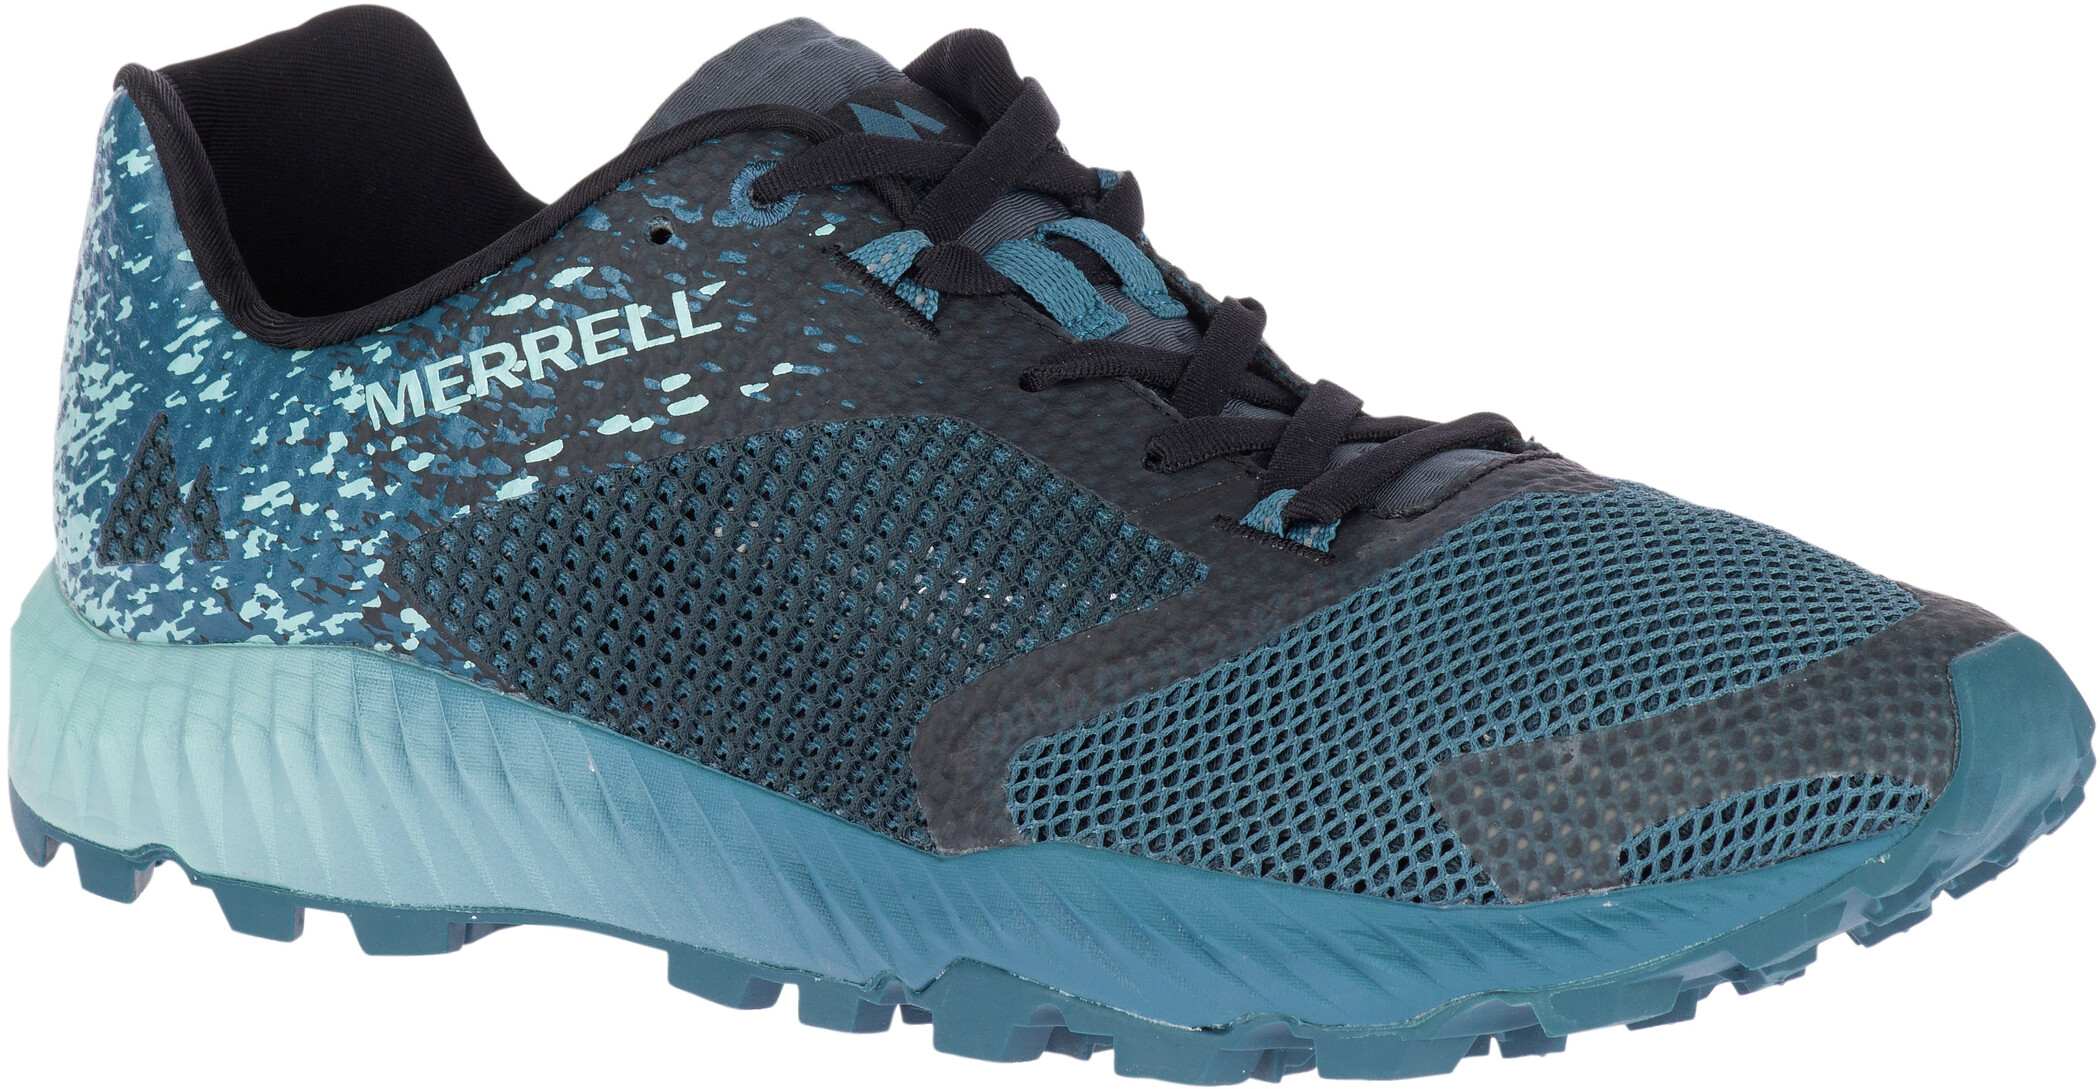 Merrell All Out Crush 2 Sko Herrer, legion/slate | Shoes and overlays